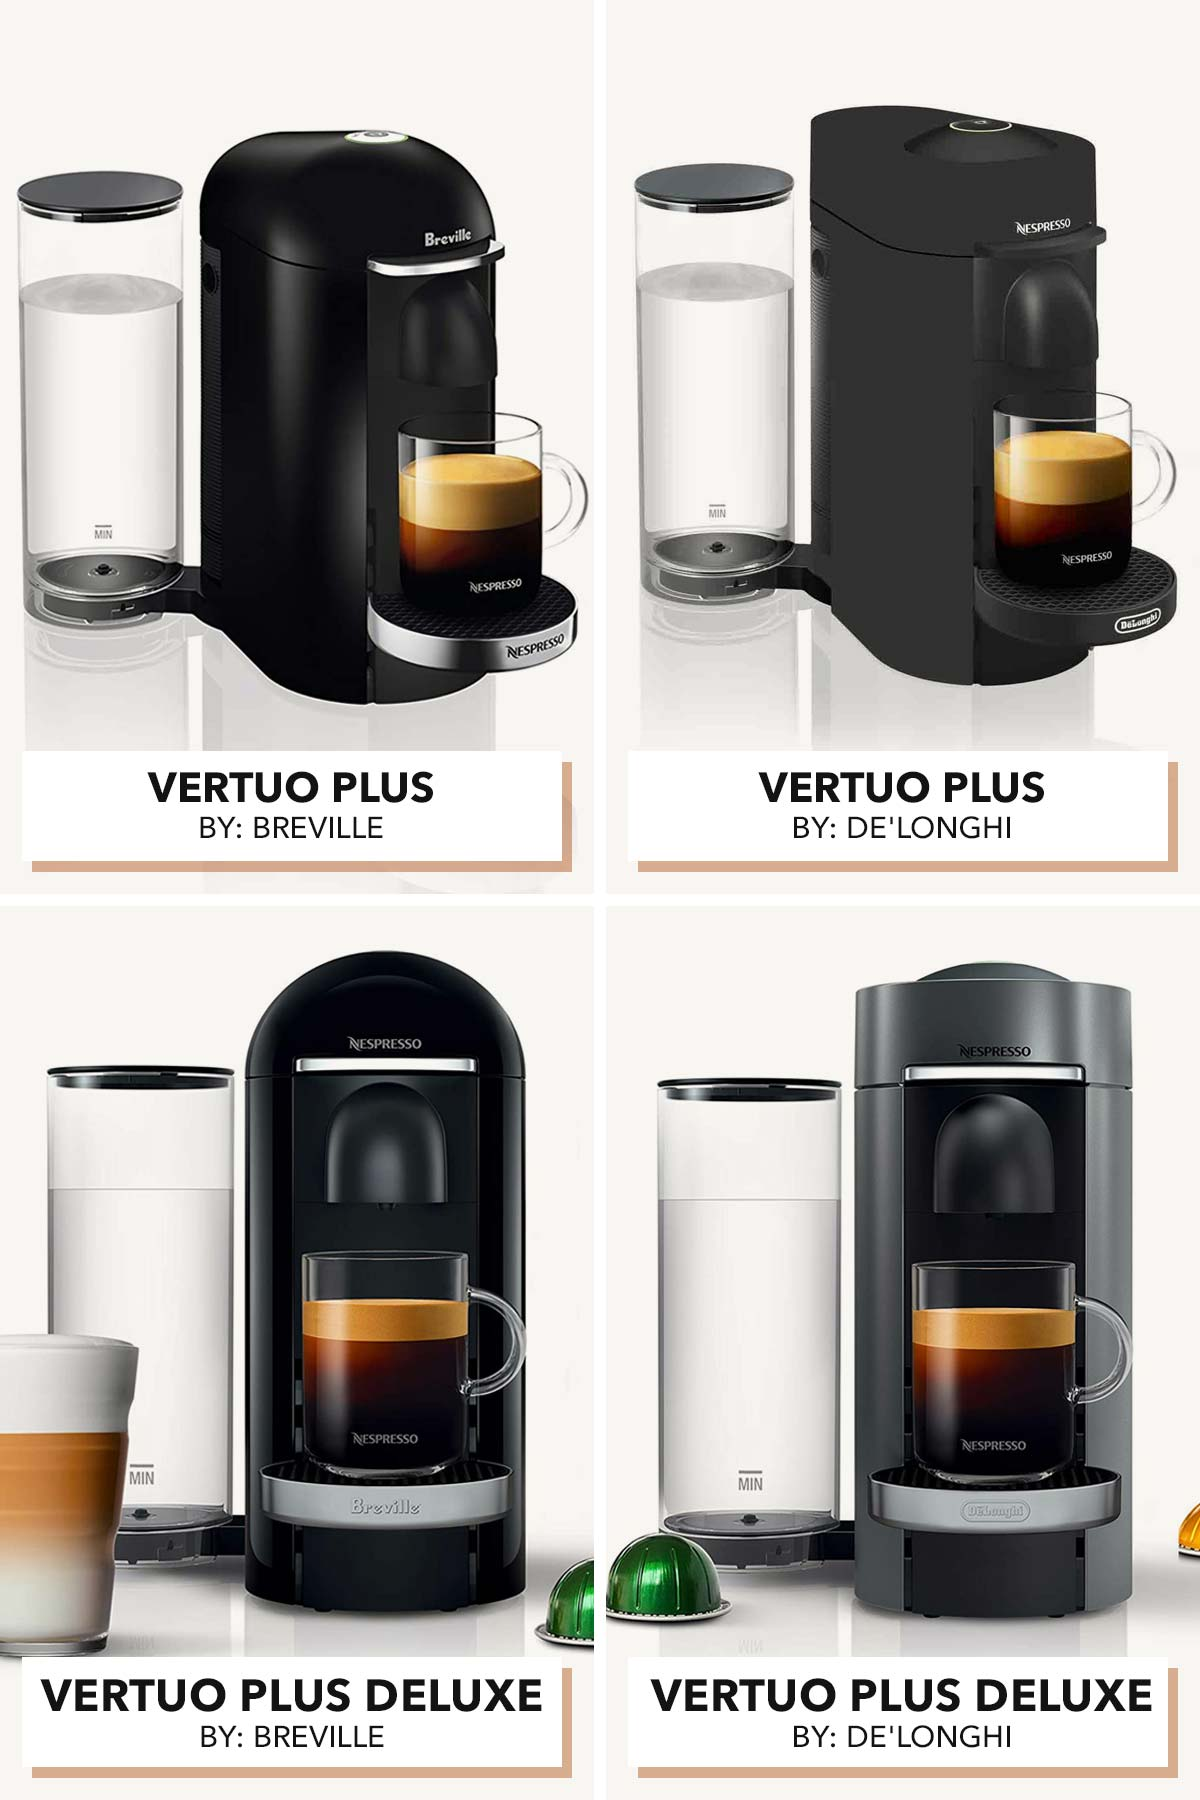 Four photos of the Nespresso Vertuo Plus machines made by Breville and De'Longhi.